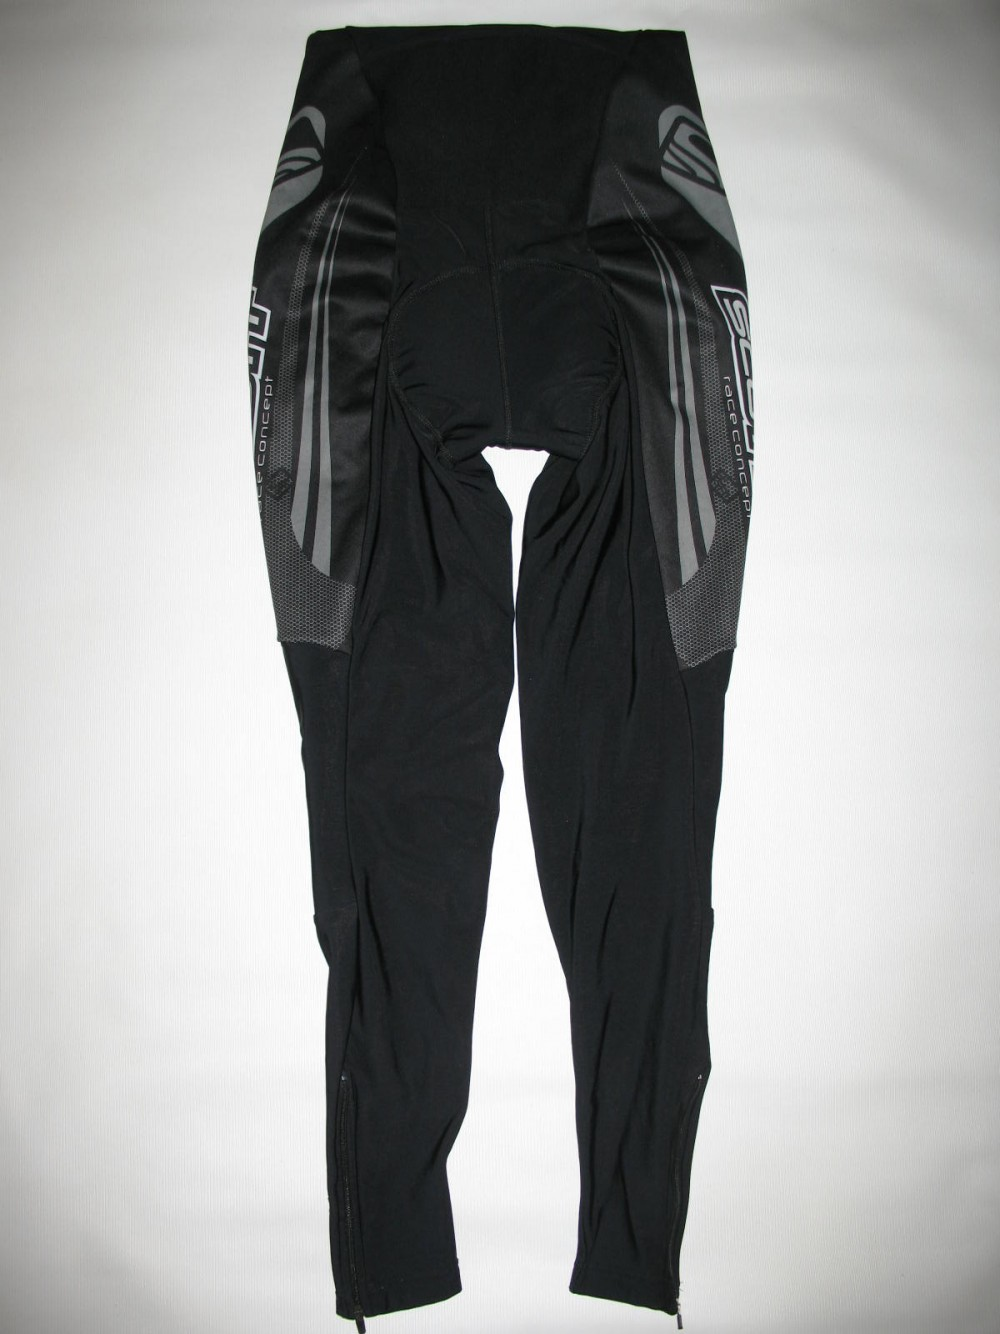 Велобрюки SCOTT cycling bib pants (размер 34/L) - 2